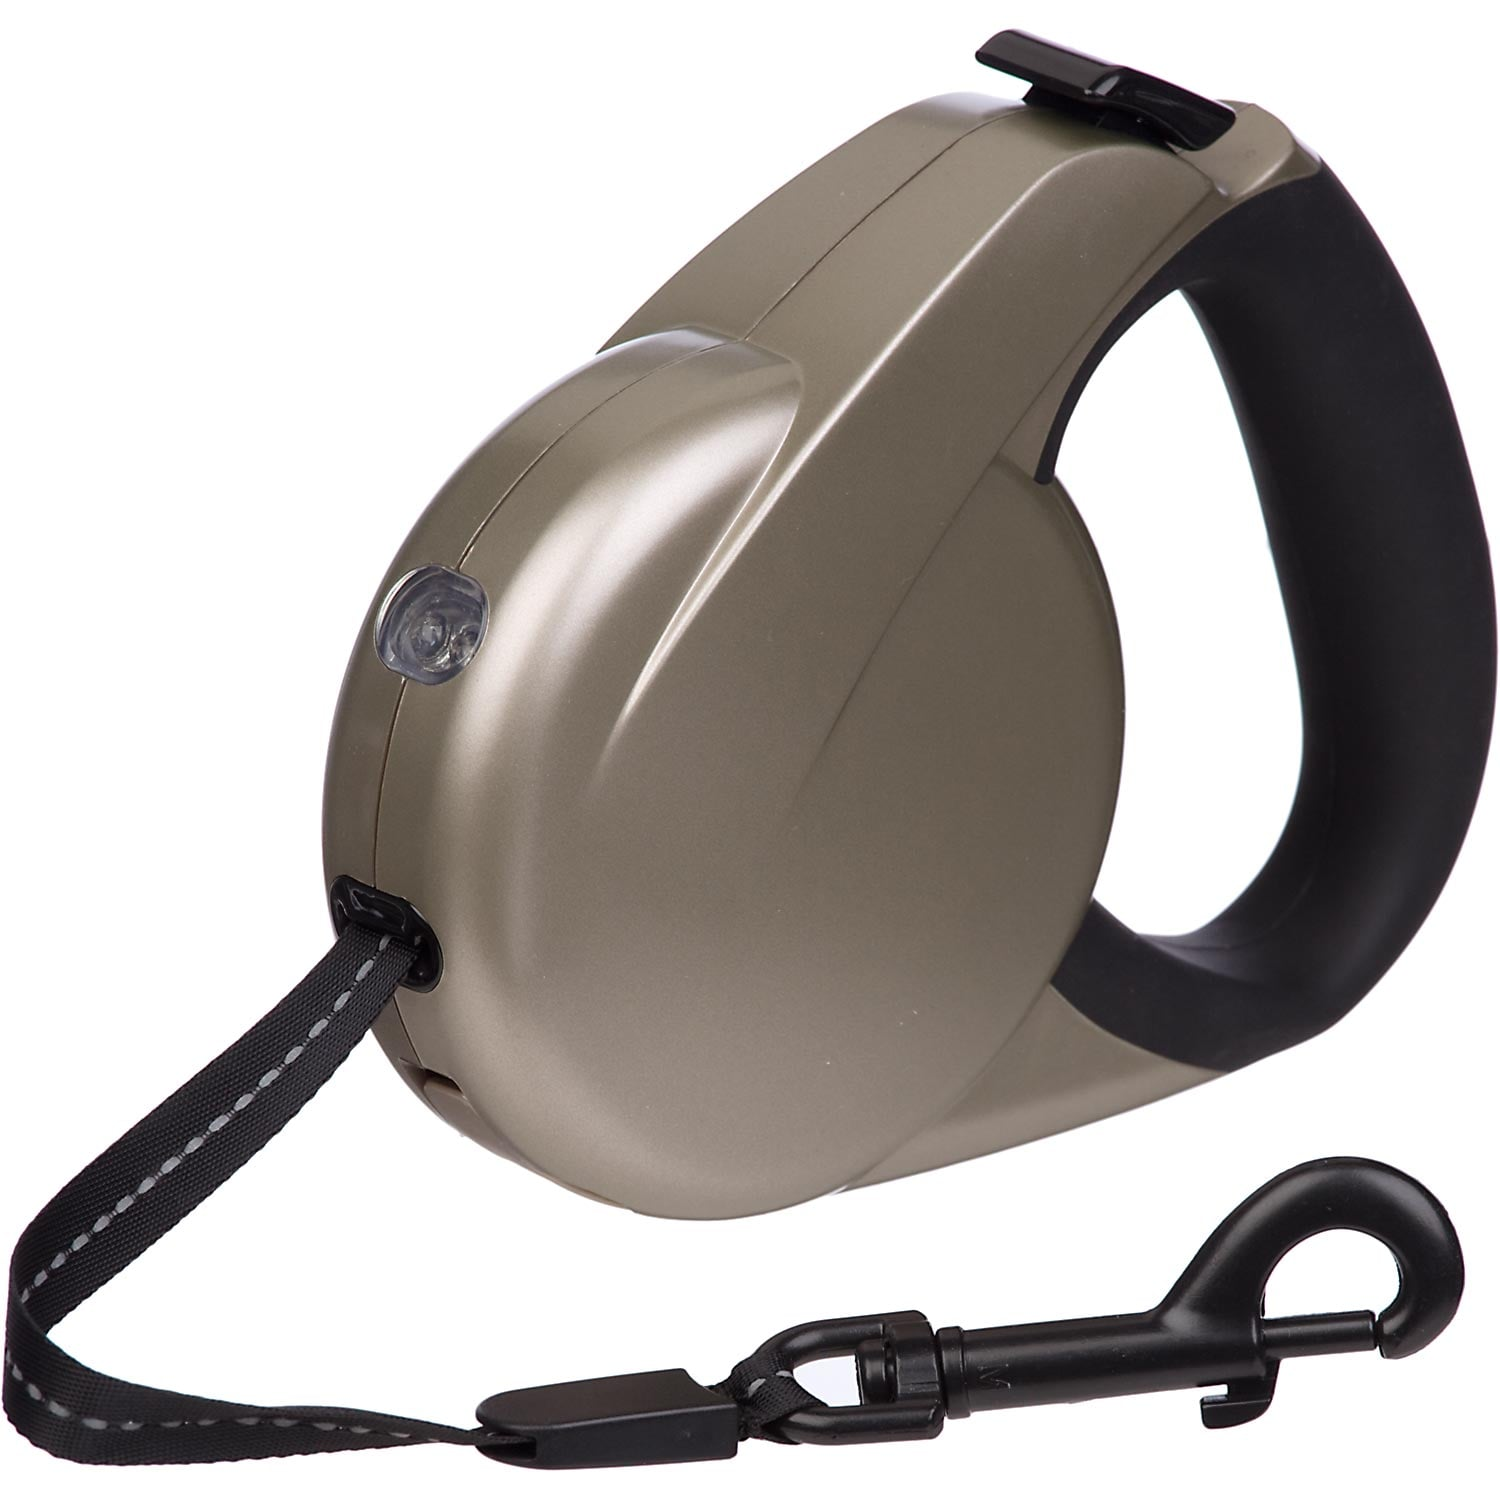 Retractable Cord Leash With Light